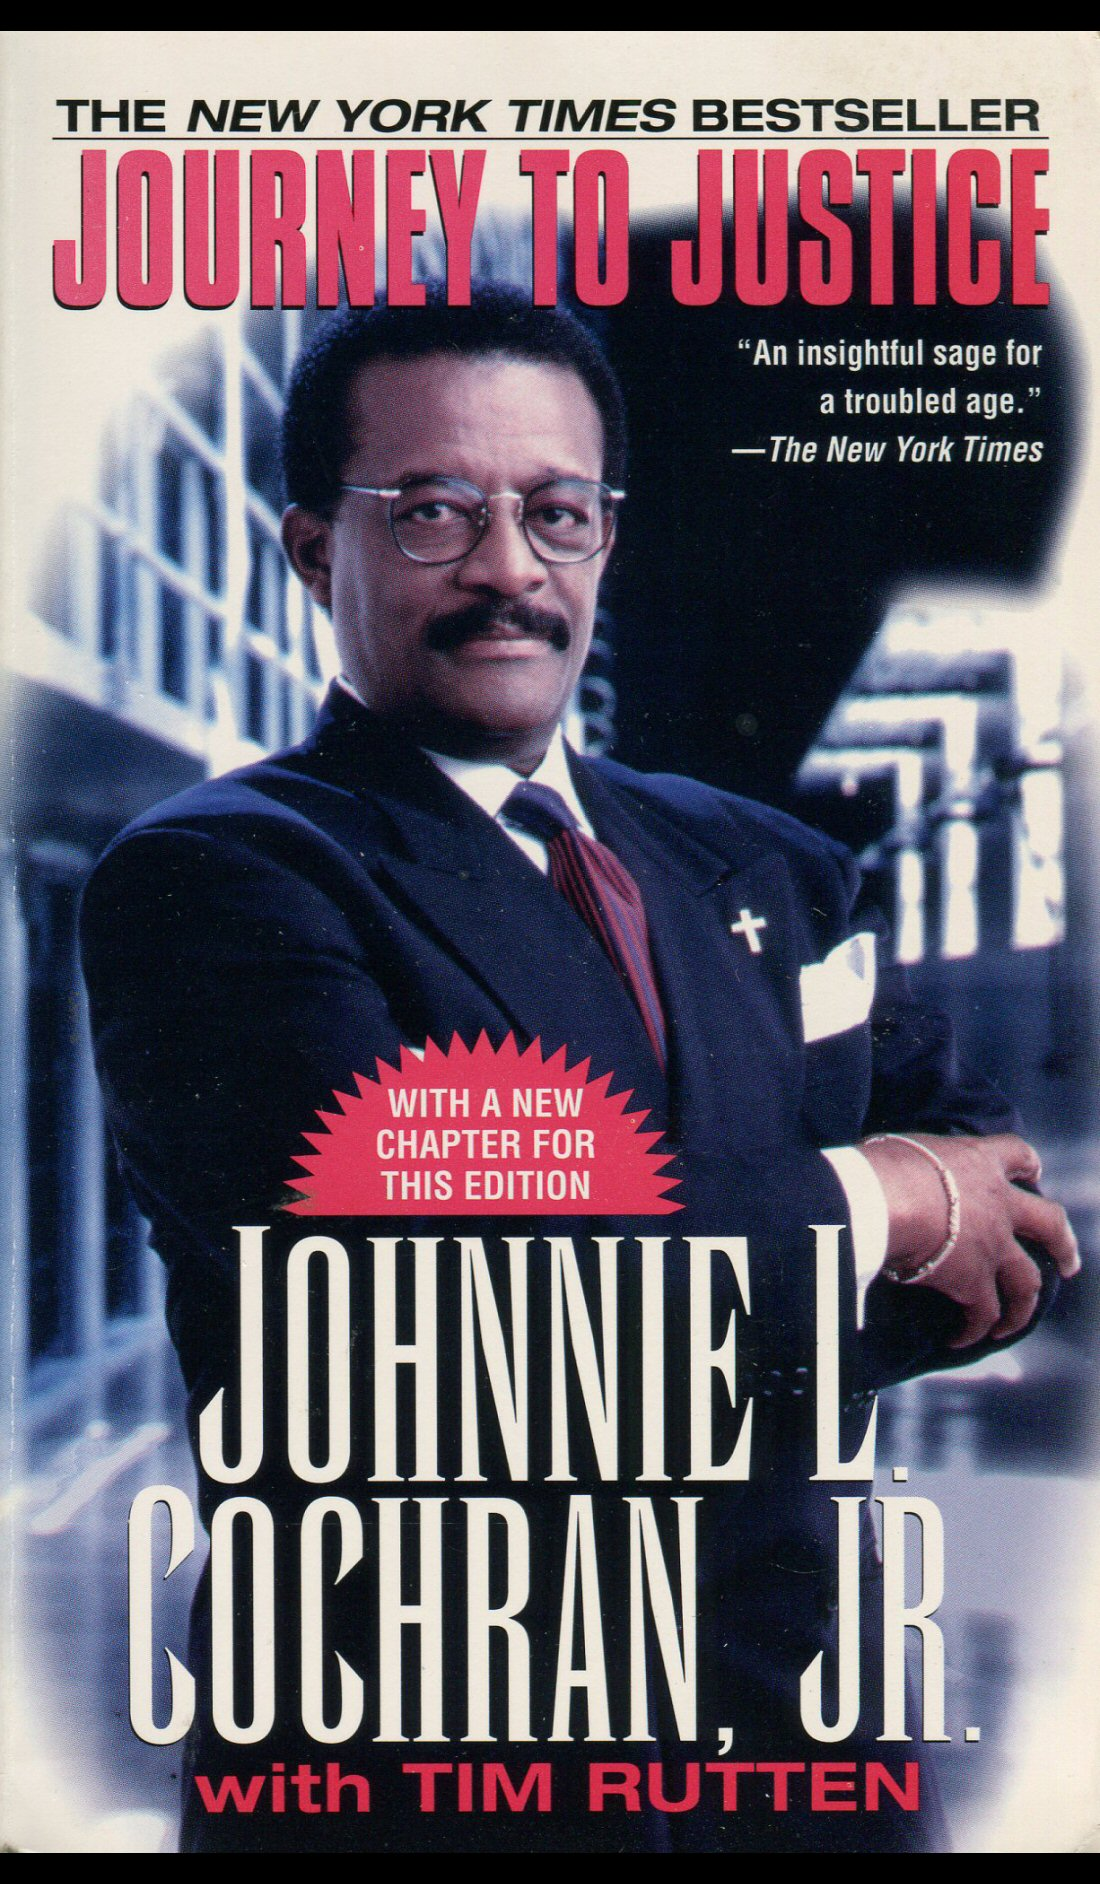 Johnnie Cochran on the Chandler settlement